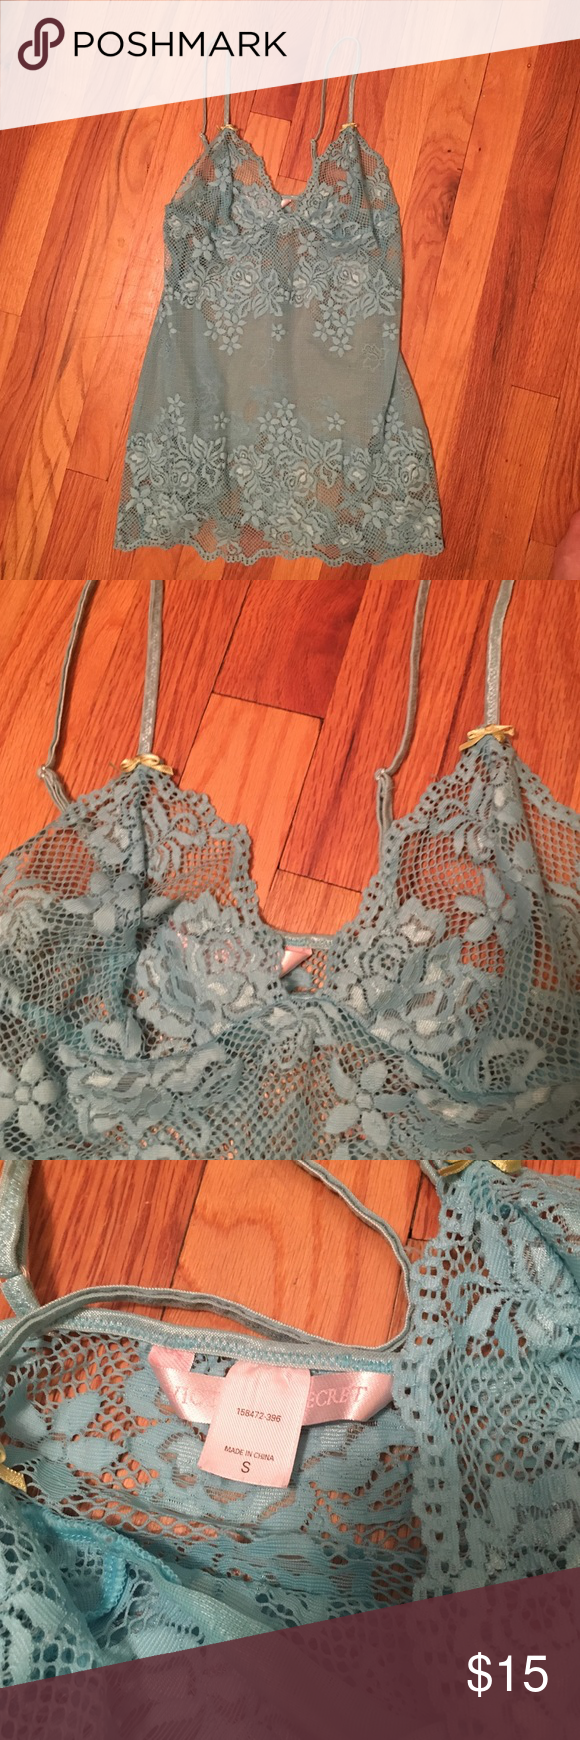 Victoria's Secret lingerie Light teal lace nighty with lime green bow detail. Worn only couple times. Good condition Victoria's Secret Intimates & Sleepwear